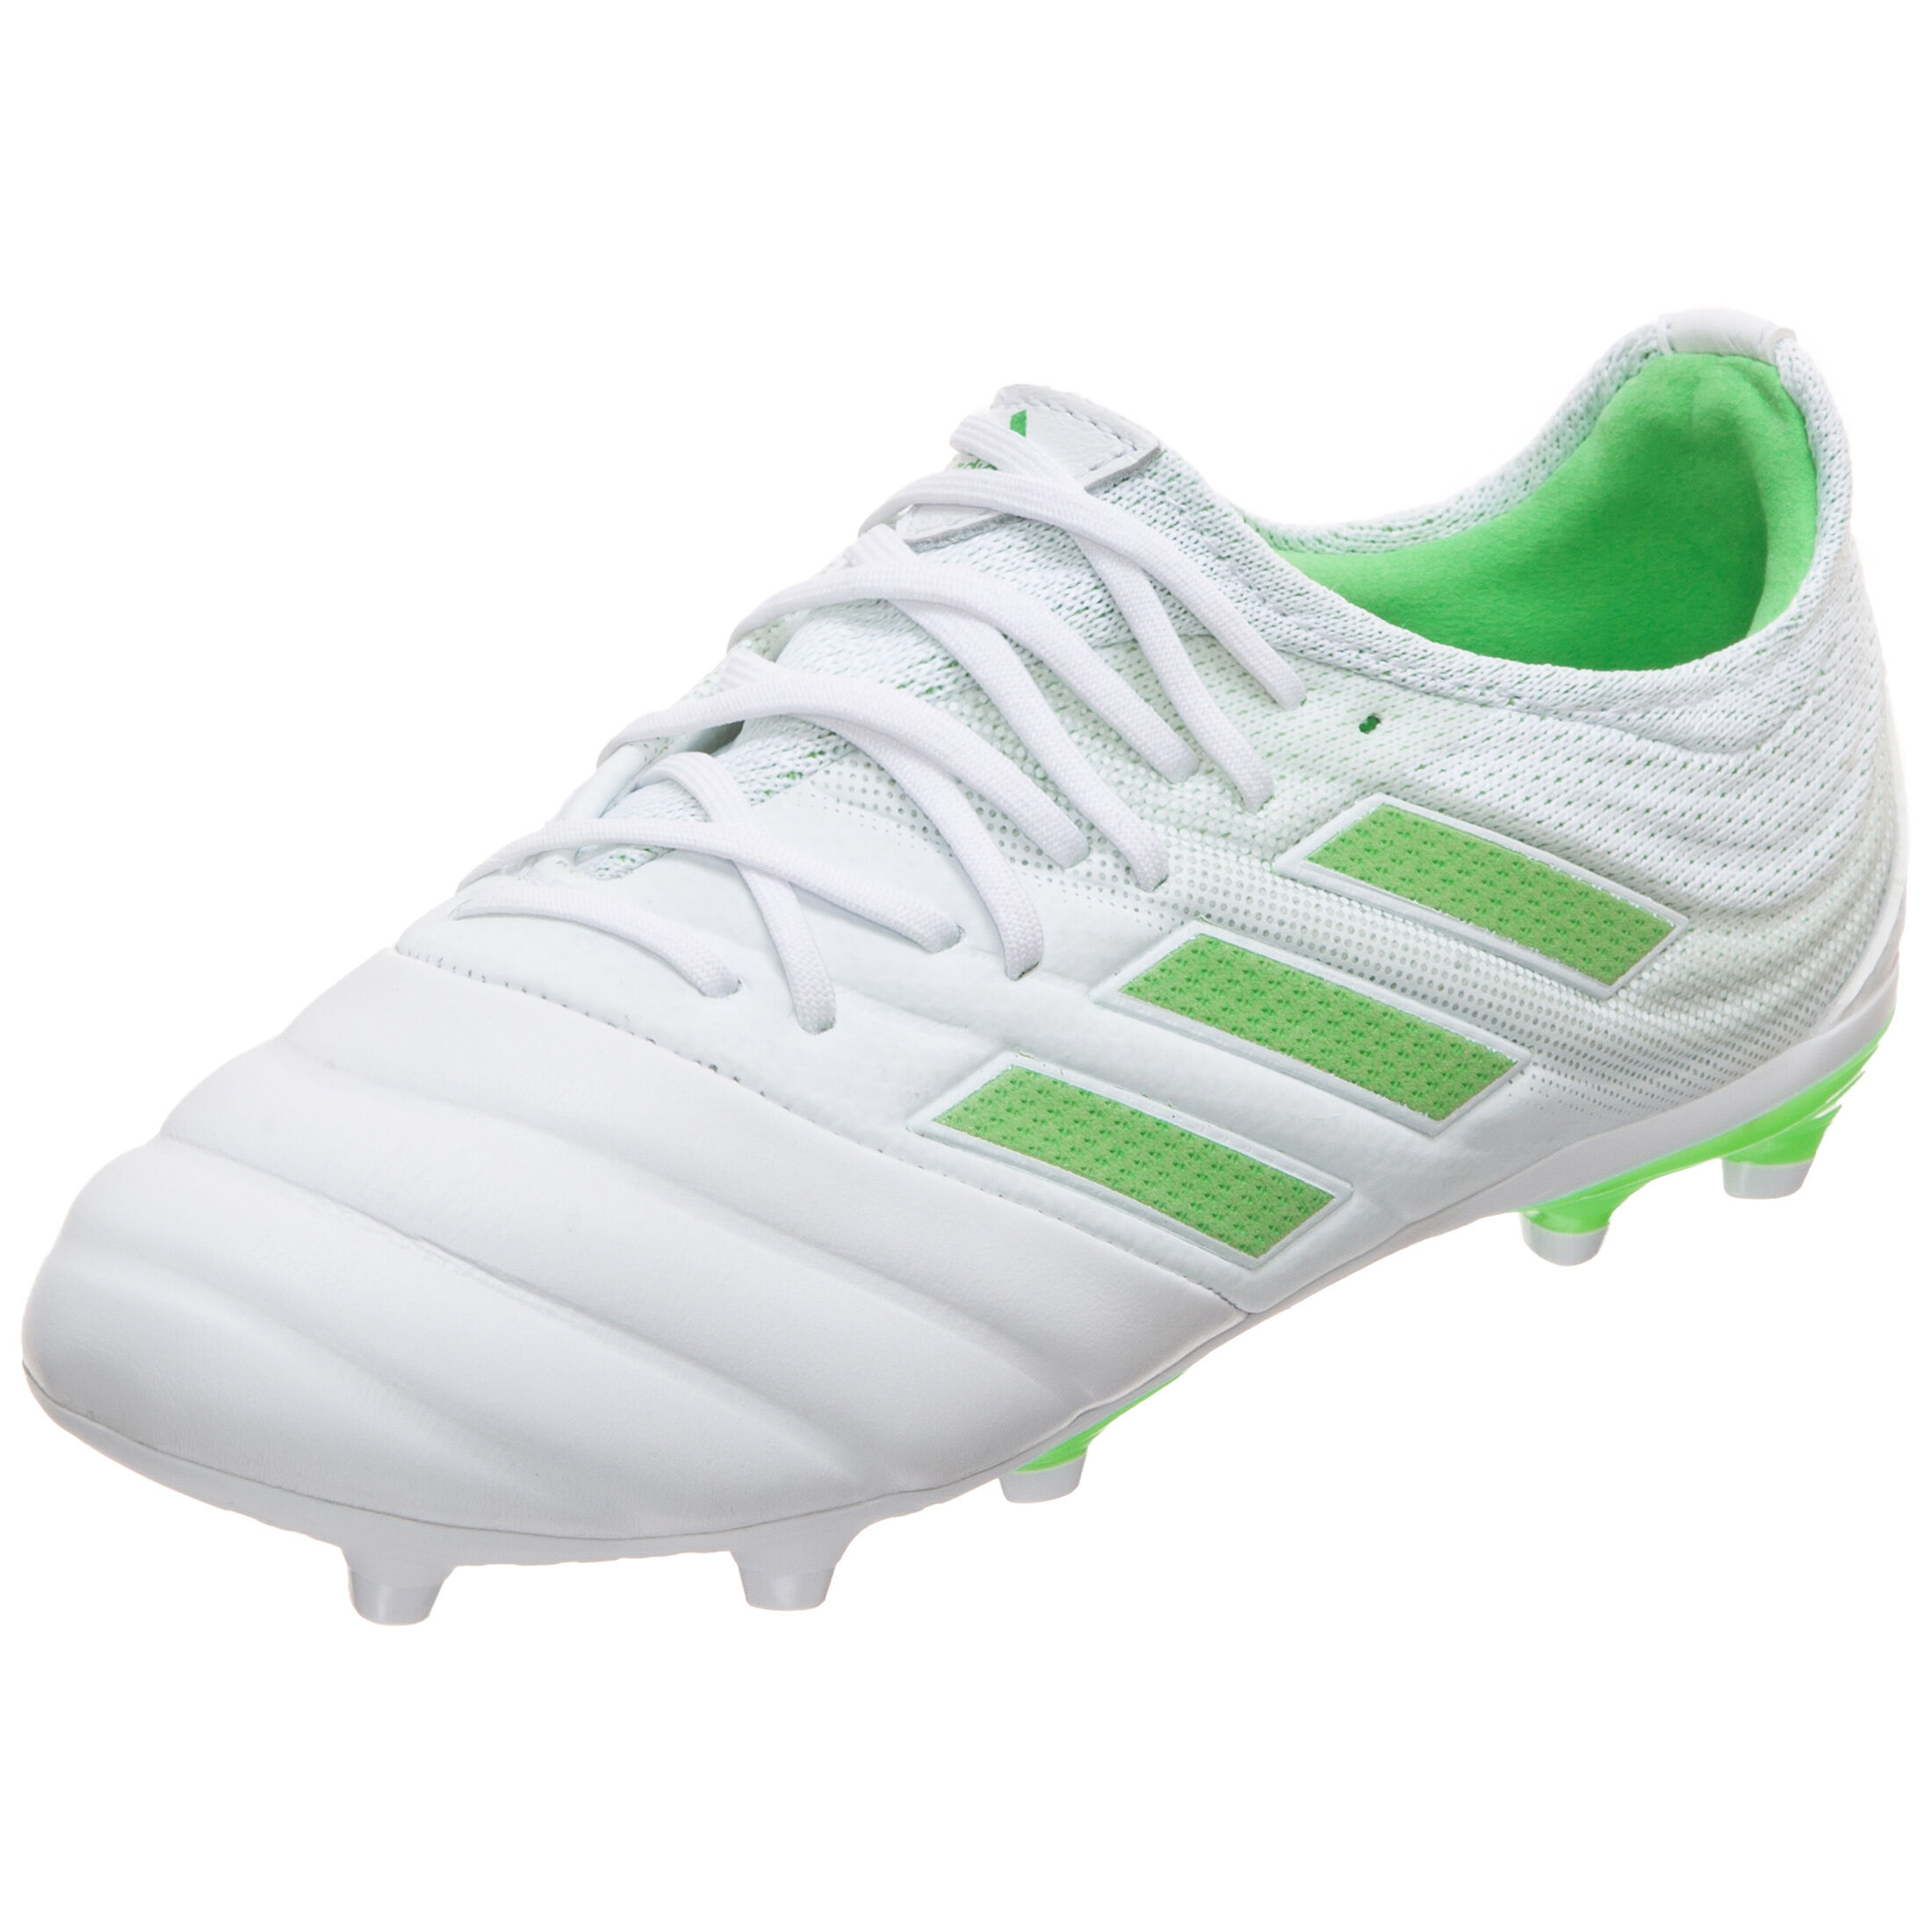 adidas Copa kaufen | adidas bei OUTFITTER